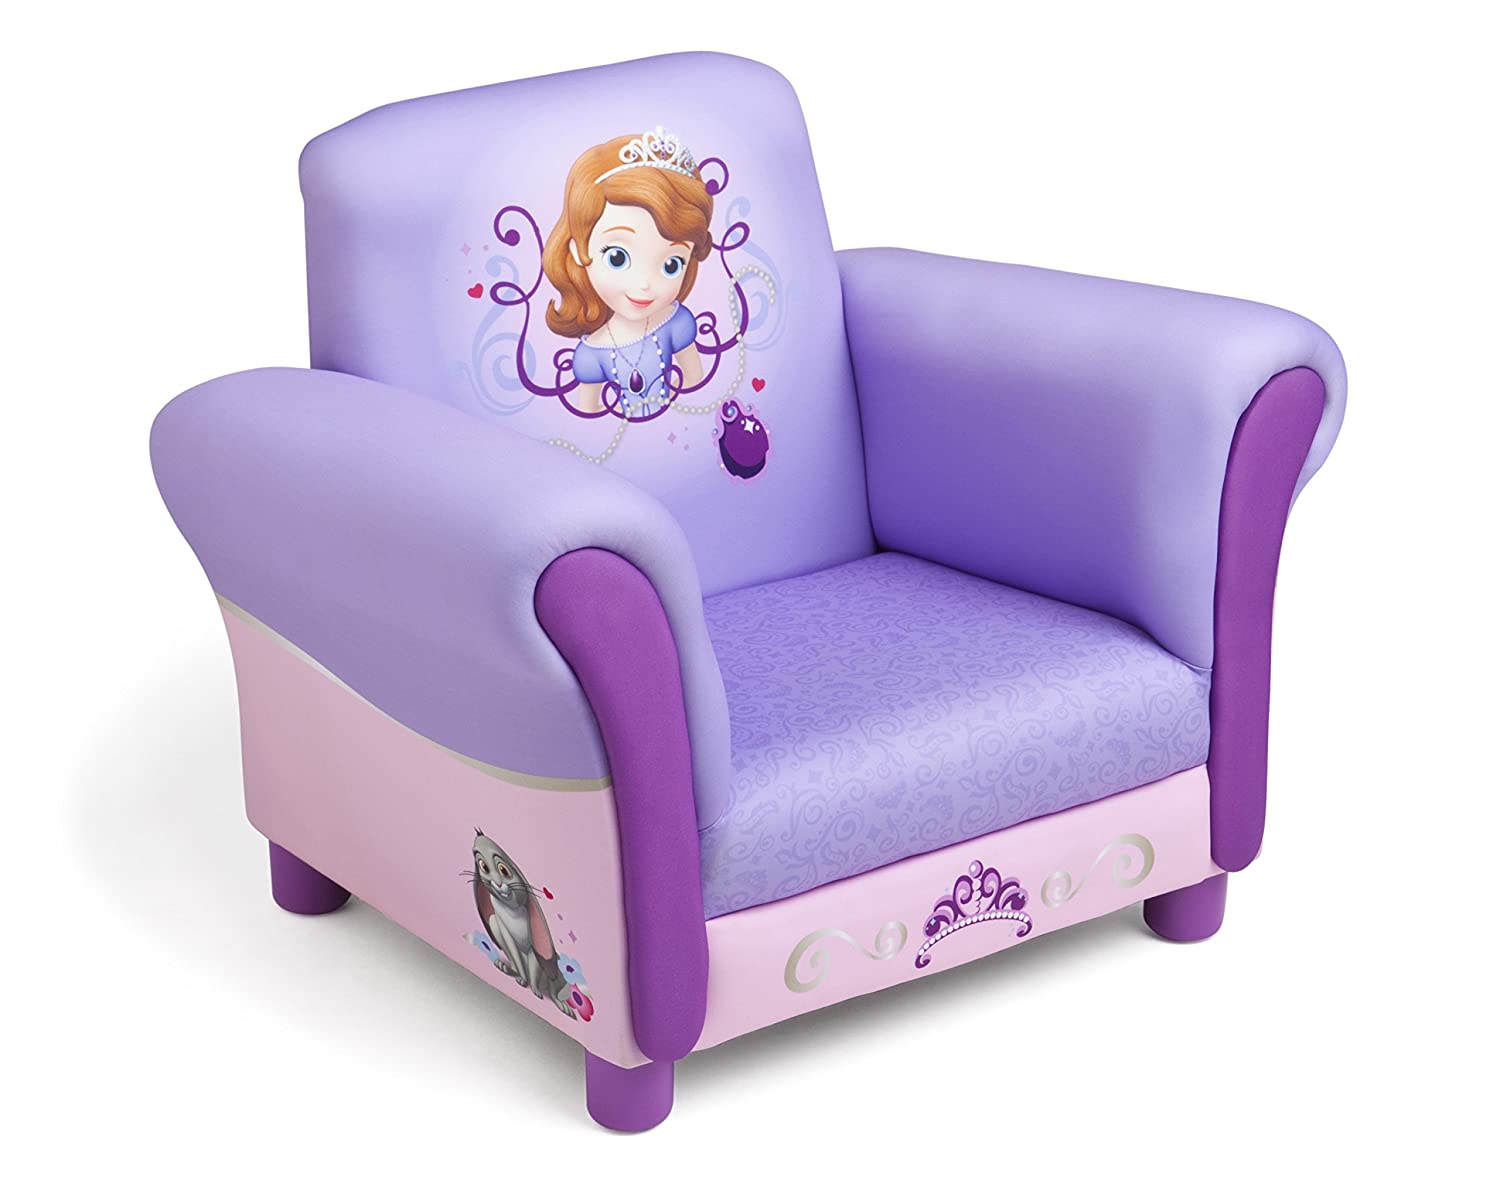 Amazon.com Disney Sofia the First Upholstered Chair by Delta Kitchen u0026 Dining  sc 1 st  Amazon.com & Amazon.com: Disney Sofia the First Upholstered Chair by Delta ... islam-shia.org